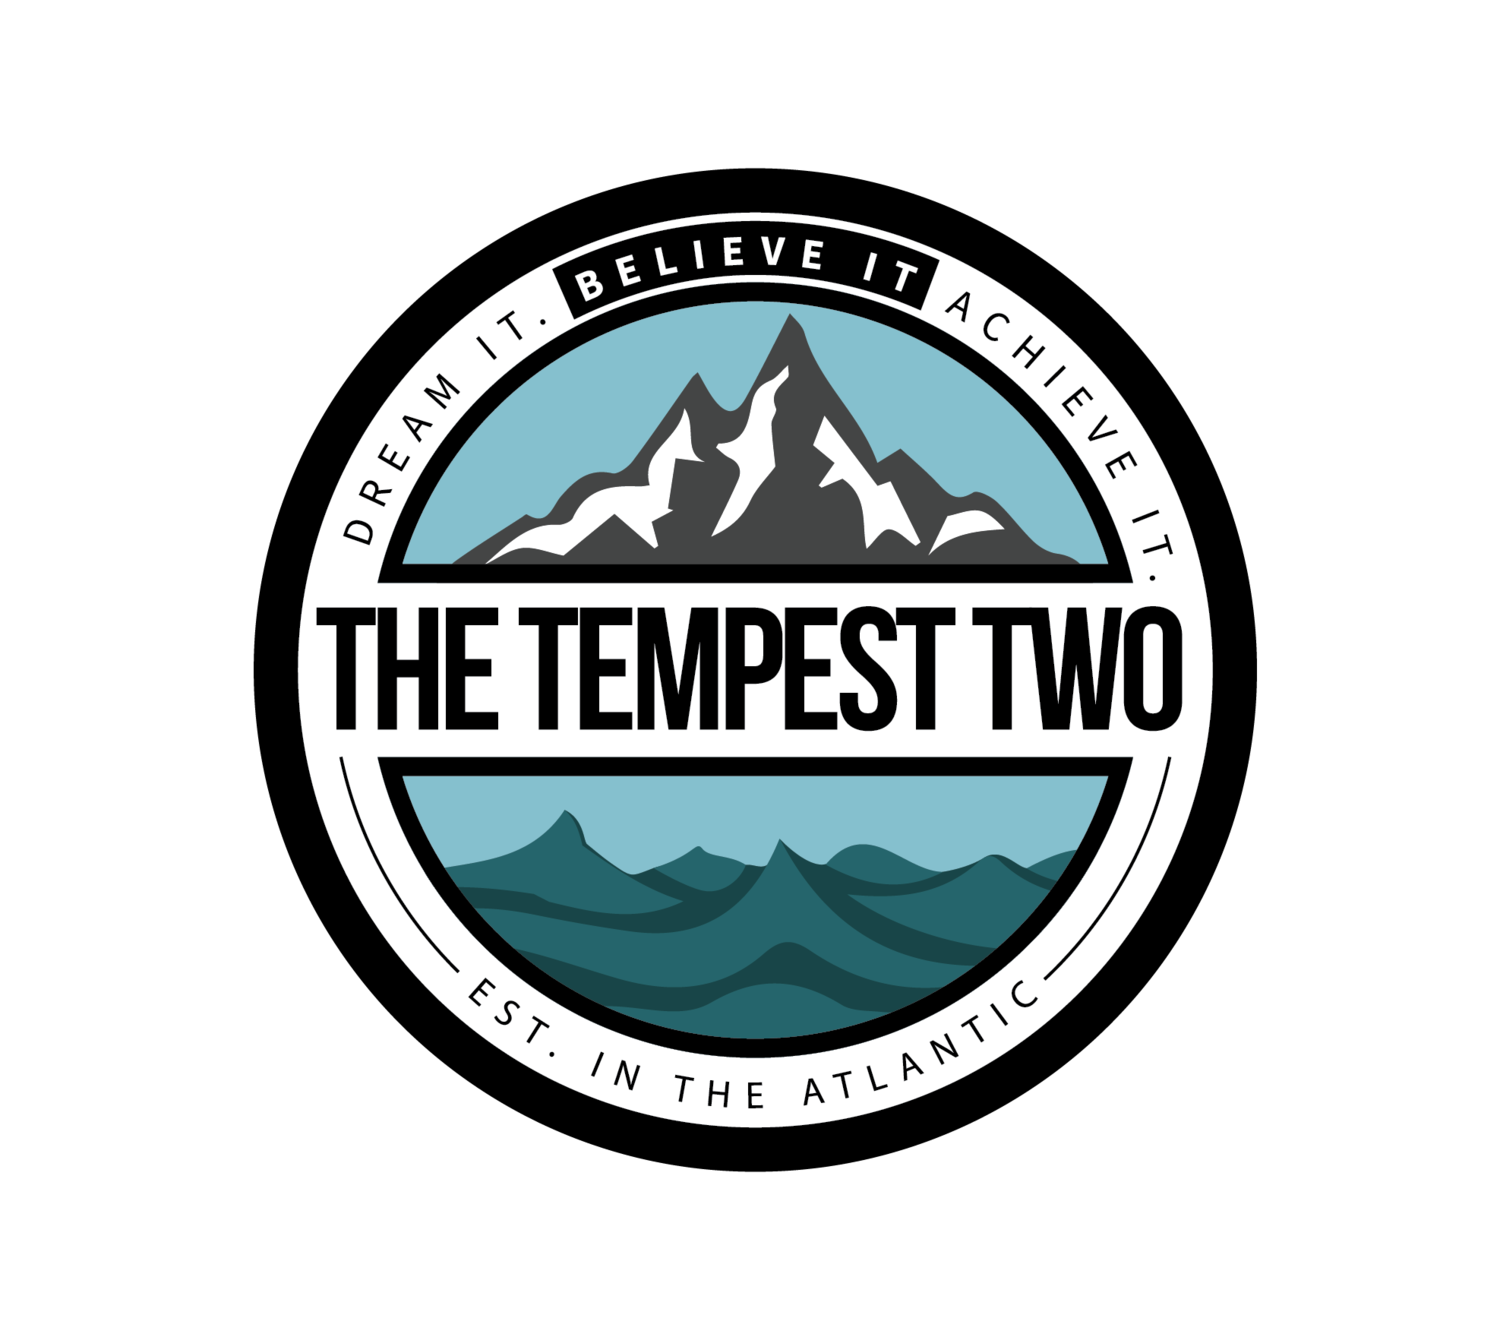 The Tempest Two